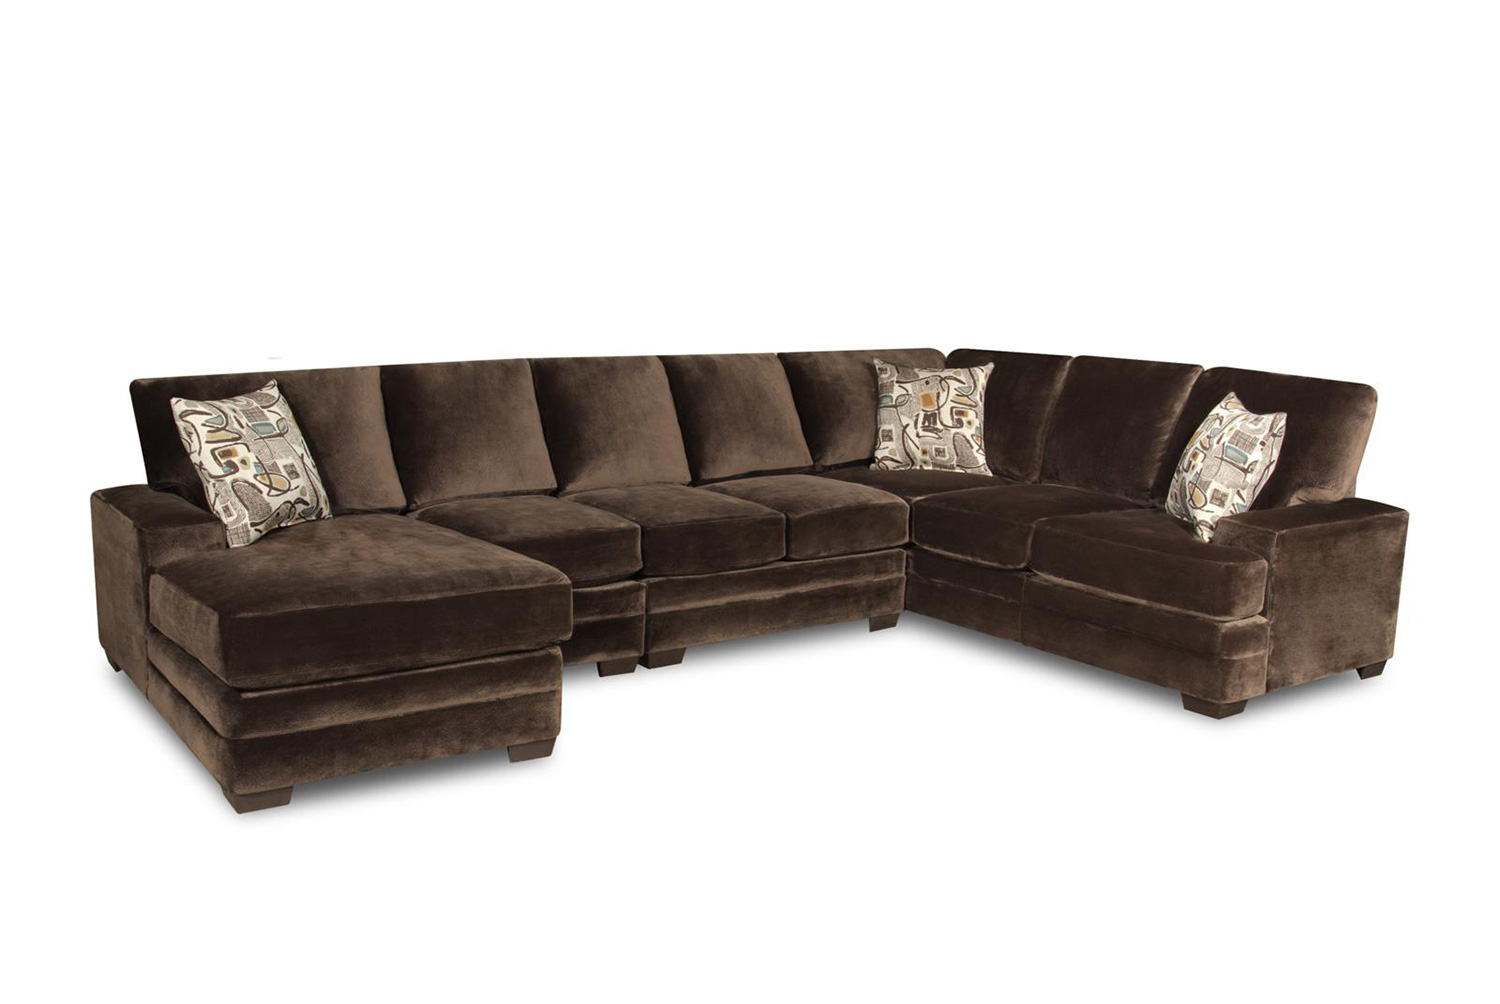 Chelsea home barstow 4 pc sectional sofa set chf 183500 for 4 pcs sectional sofa